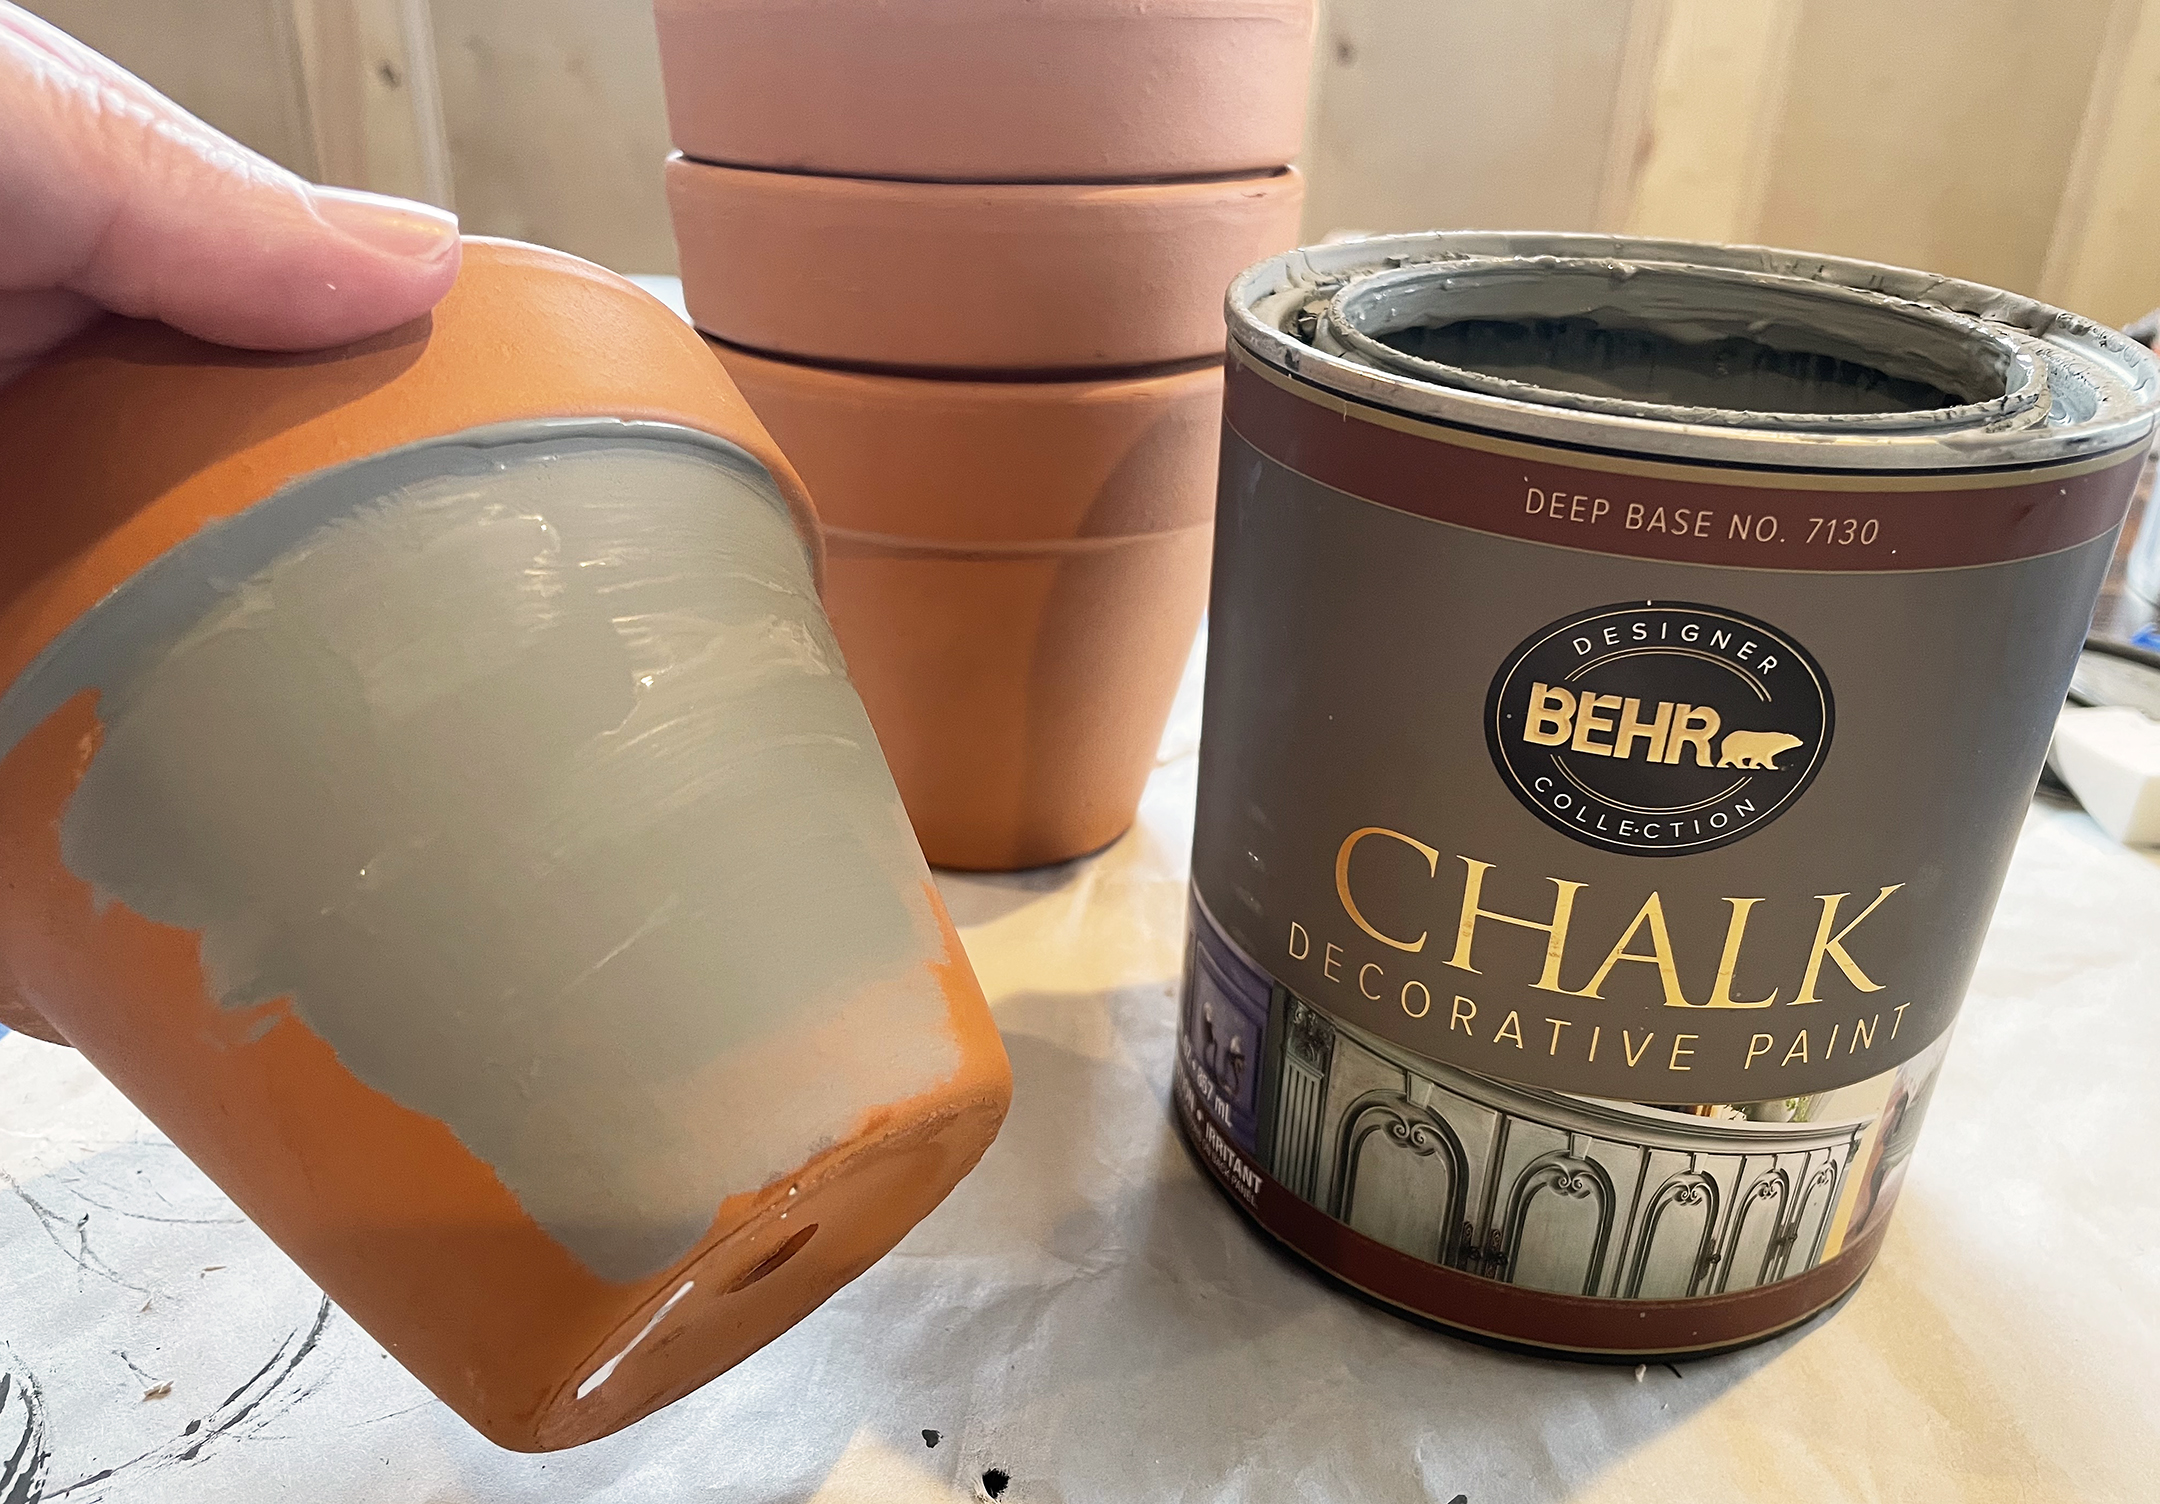 Boroughfare Home French Inspired Candles with Terra Cotta Pots Painted with Gray Chalk Paint